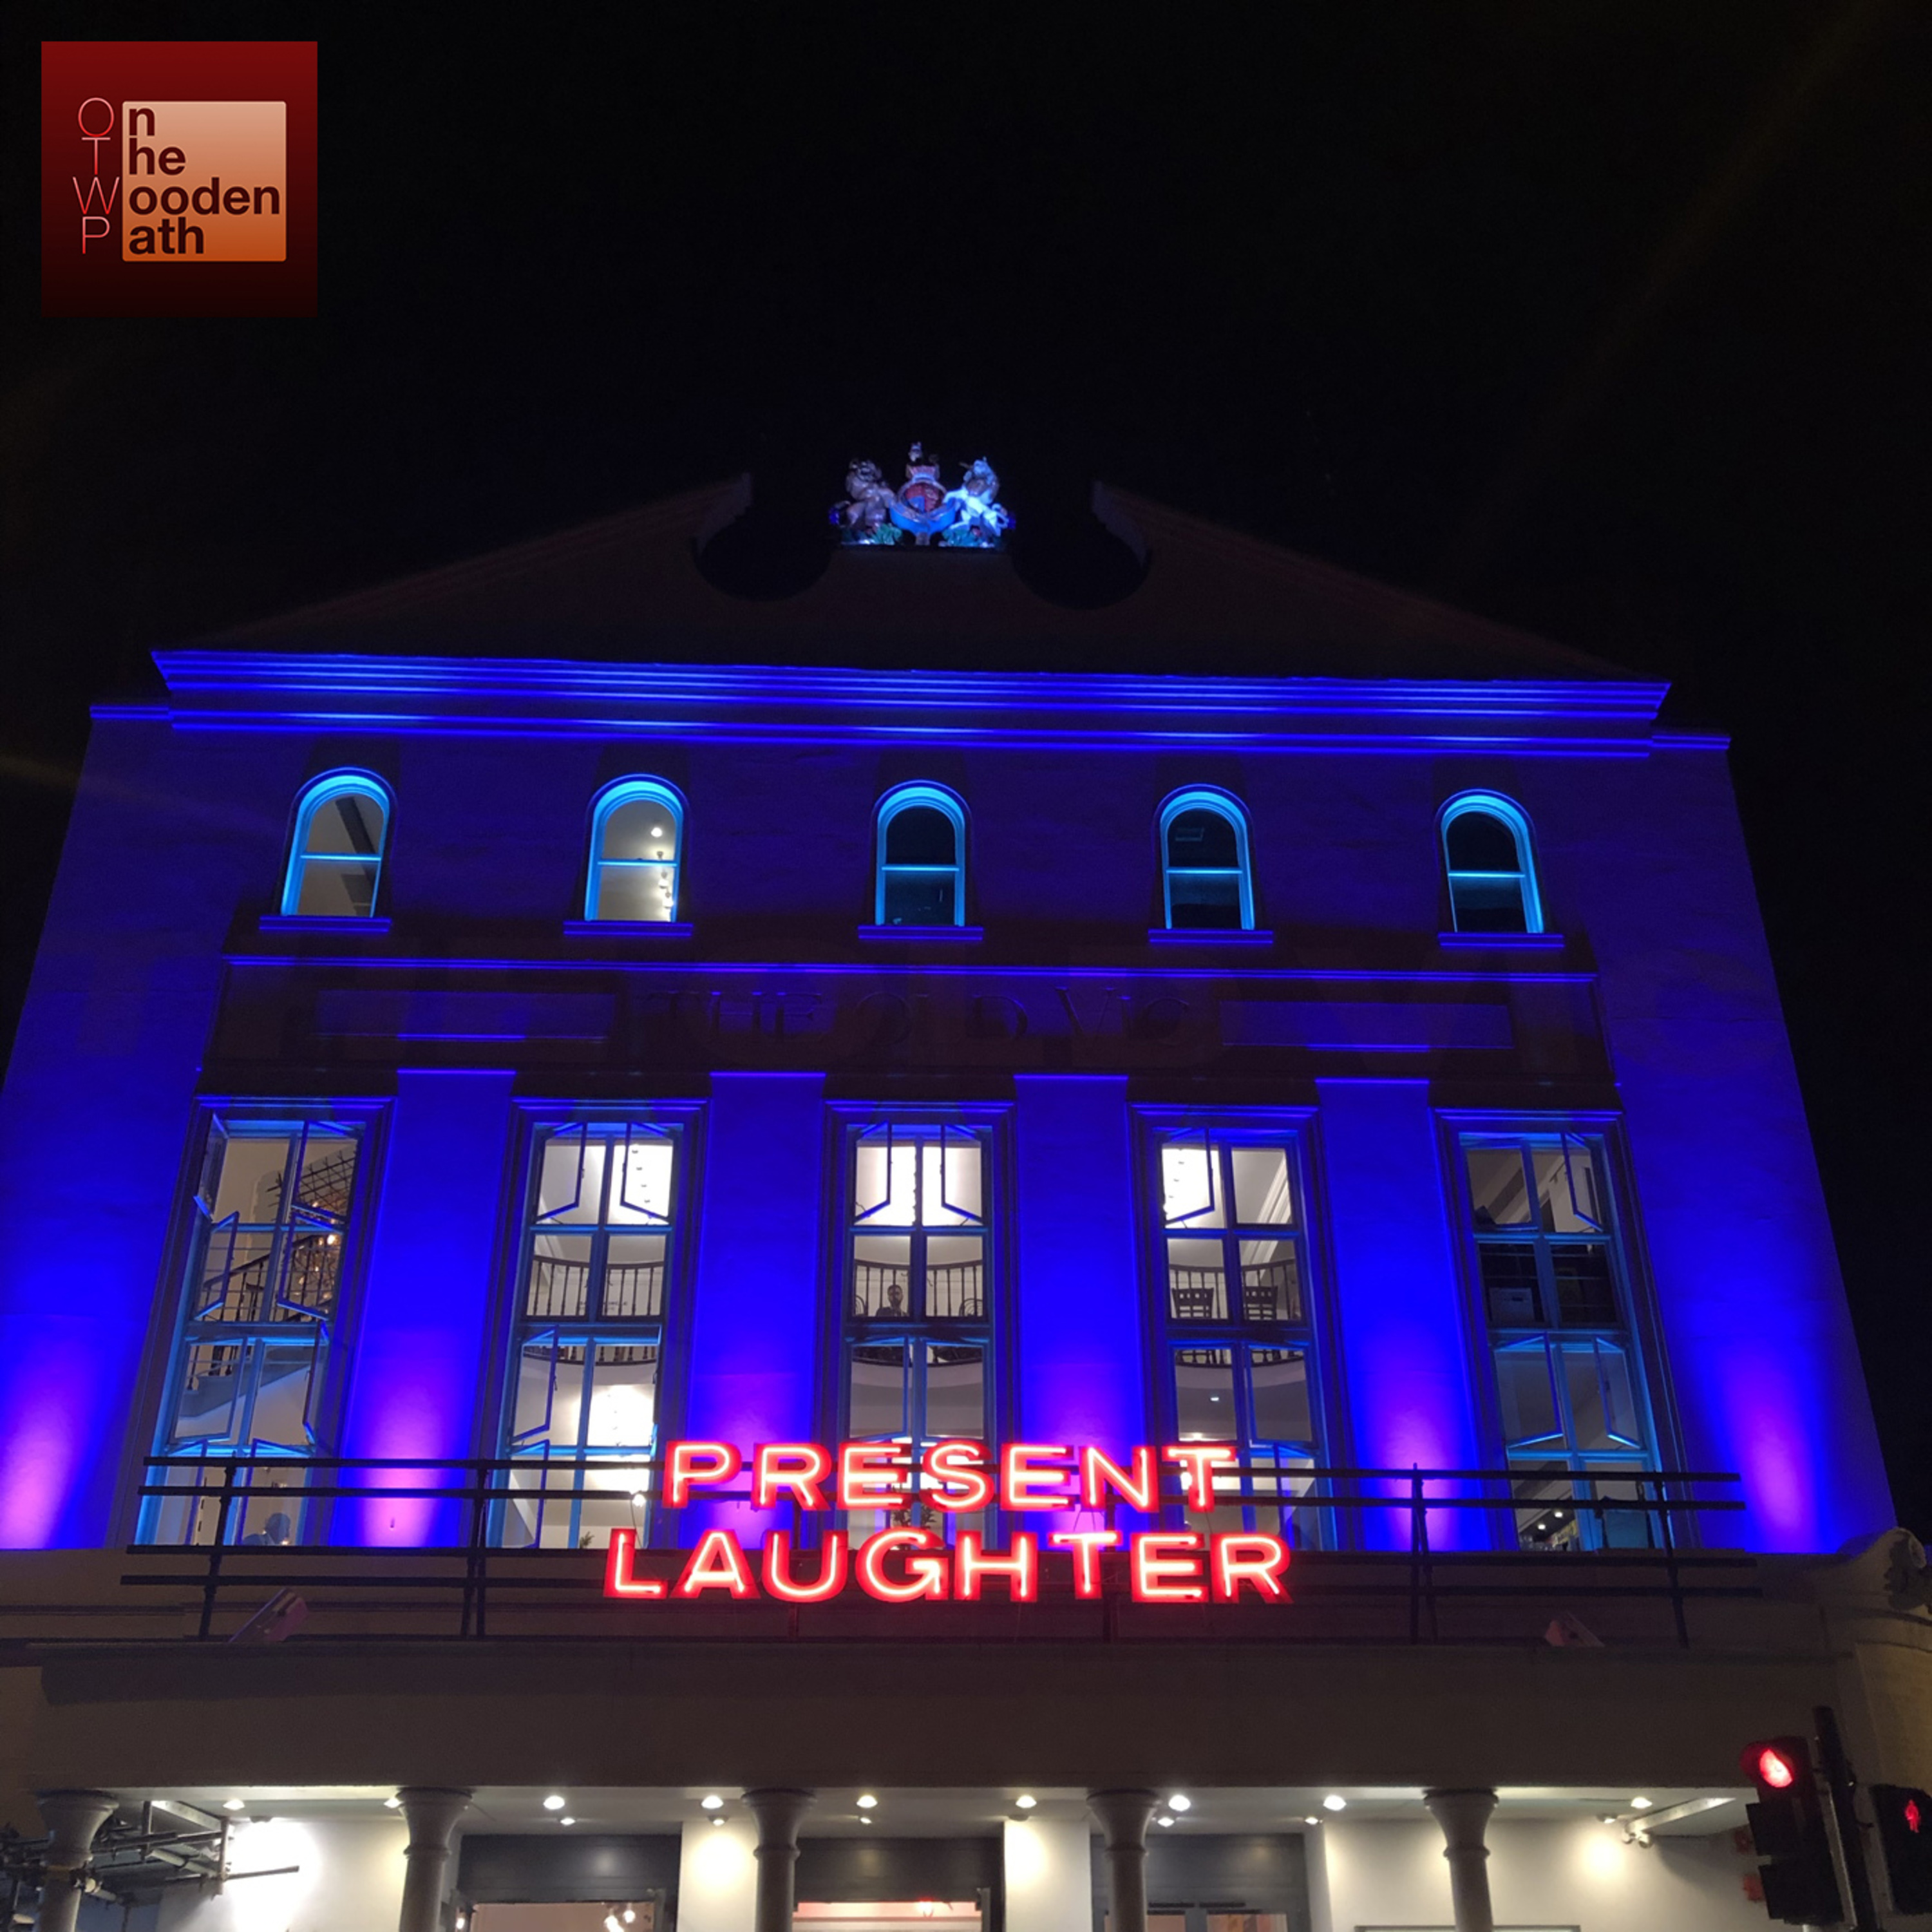 S01E45 - PRESENT LAUGHTER (2019) at The Old Vic - London